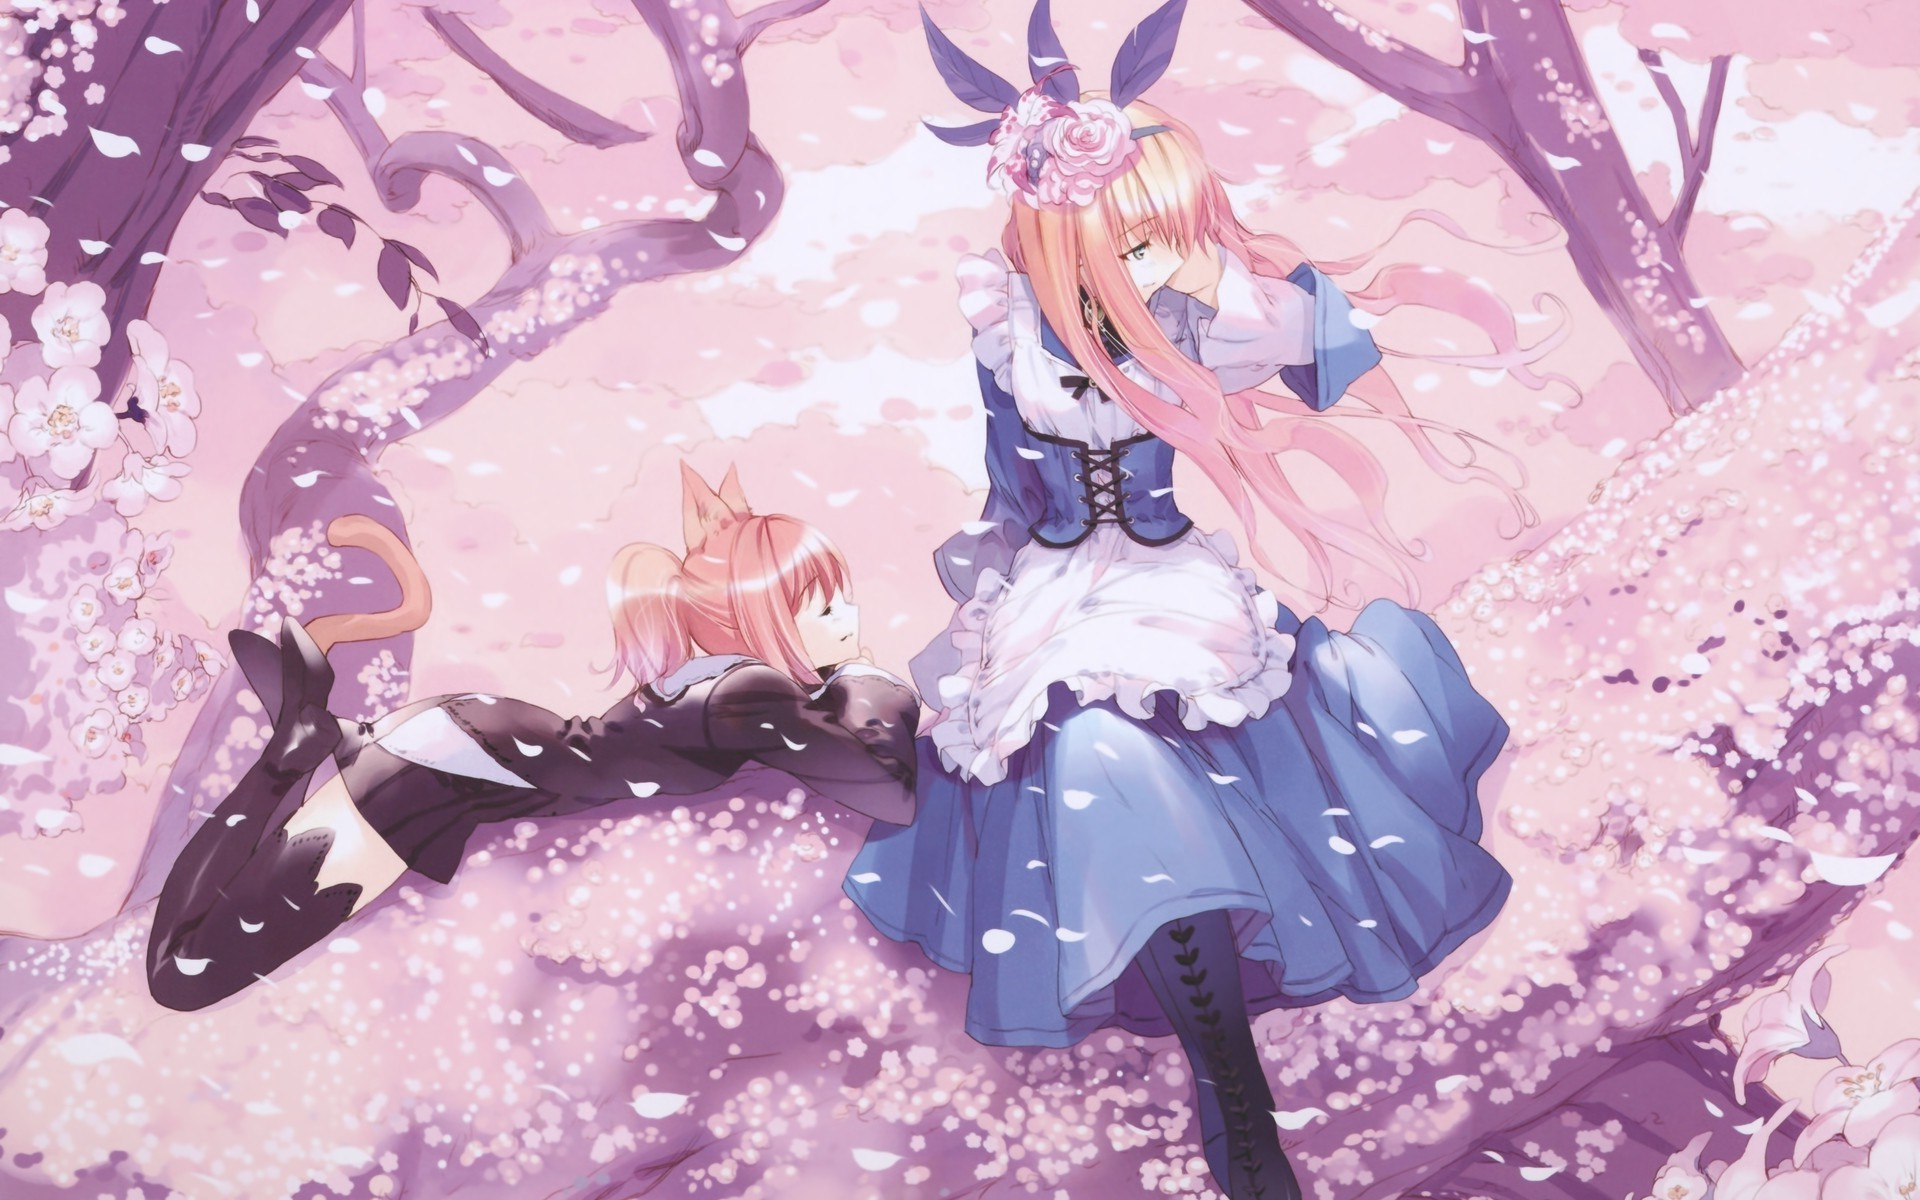 Pretty Anime Falling Angel Wallpapers 1920x1080 Hd Anime Cherry Blossom Wallpaper 72 Images